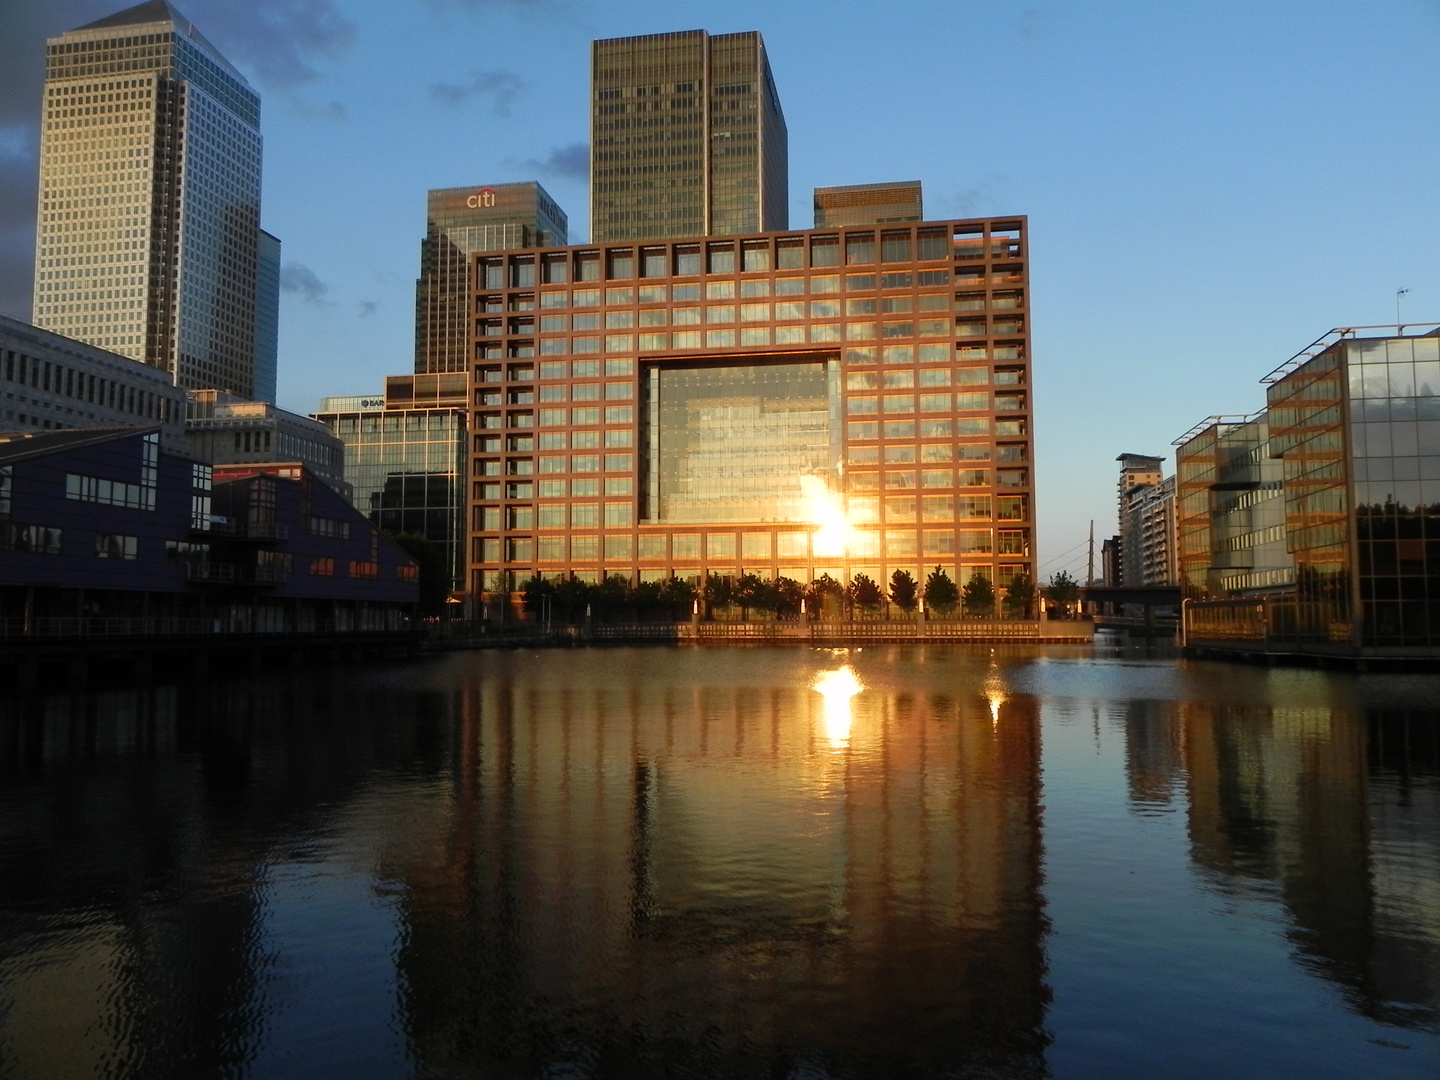 Morgan Stanley Building, Canary Wharf (Isle of Dogs), London